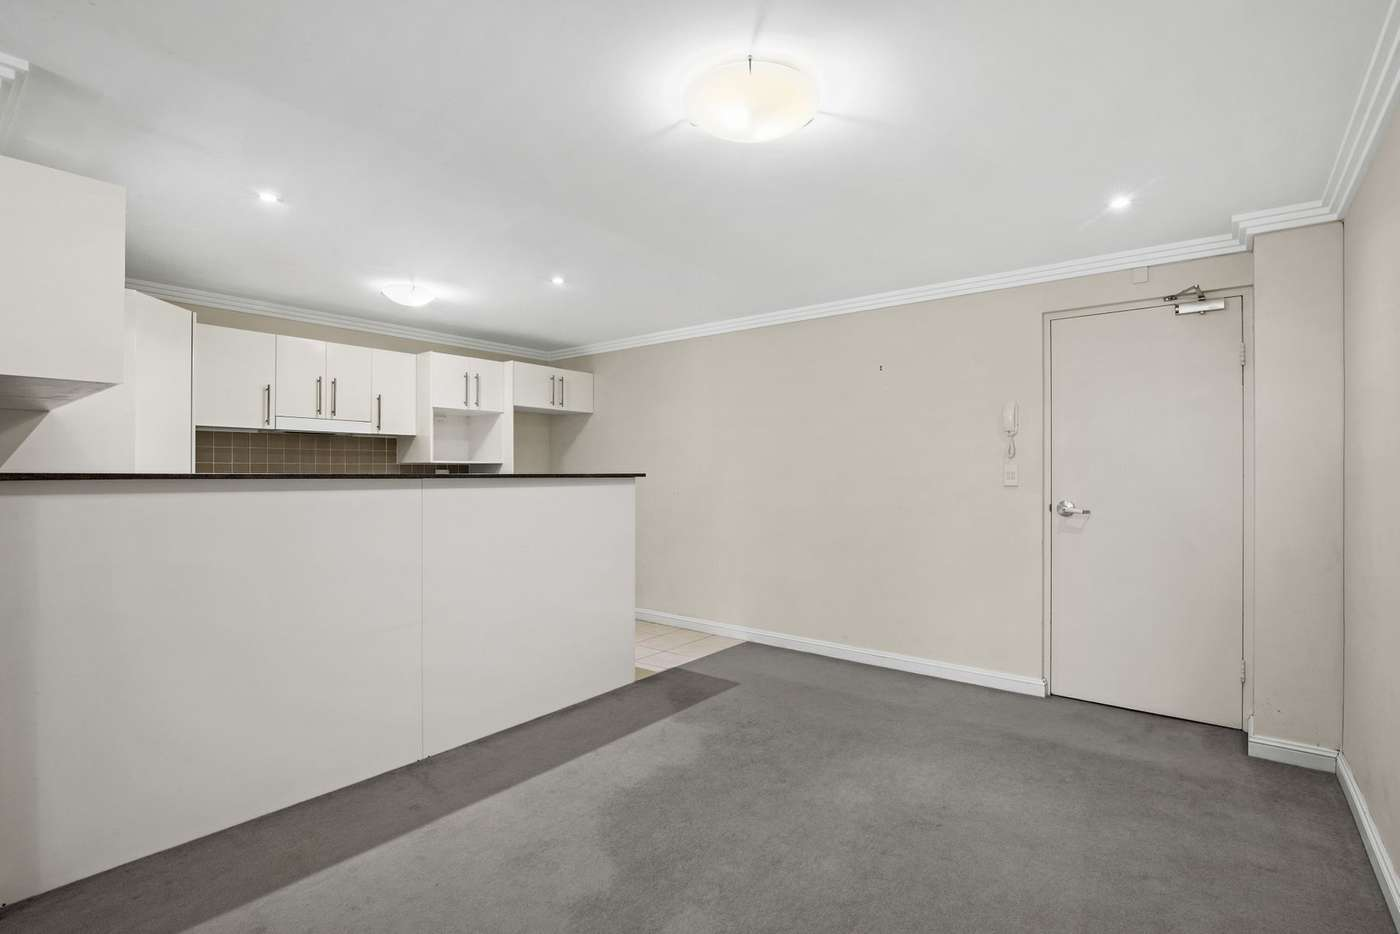 Sixth view of Homely apartment listing, 5/12 Baker Street, Gosford NSW 2250